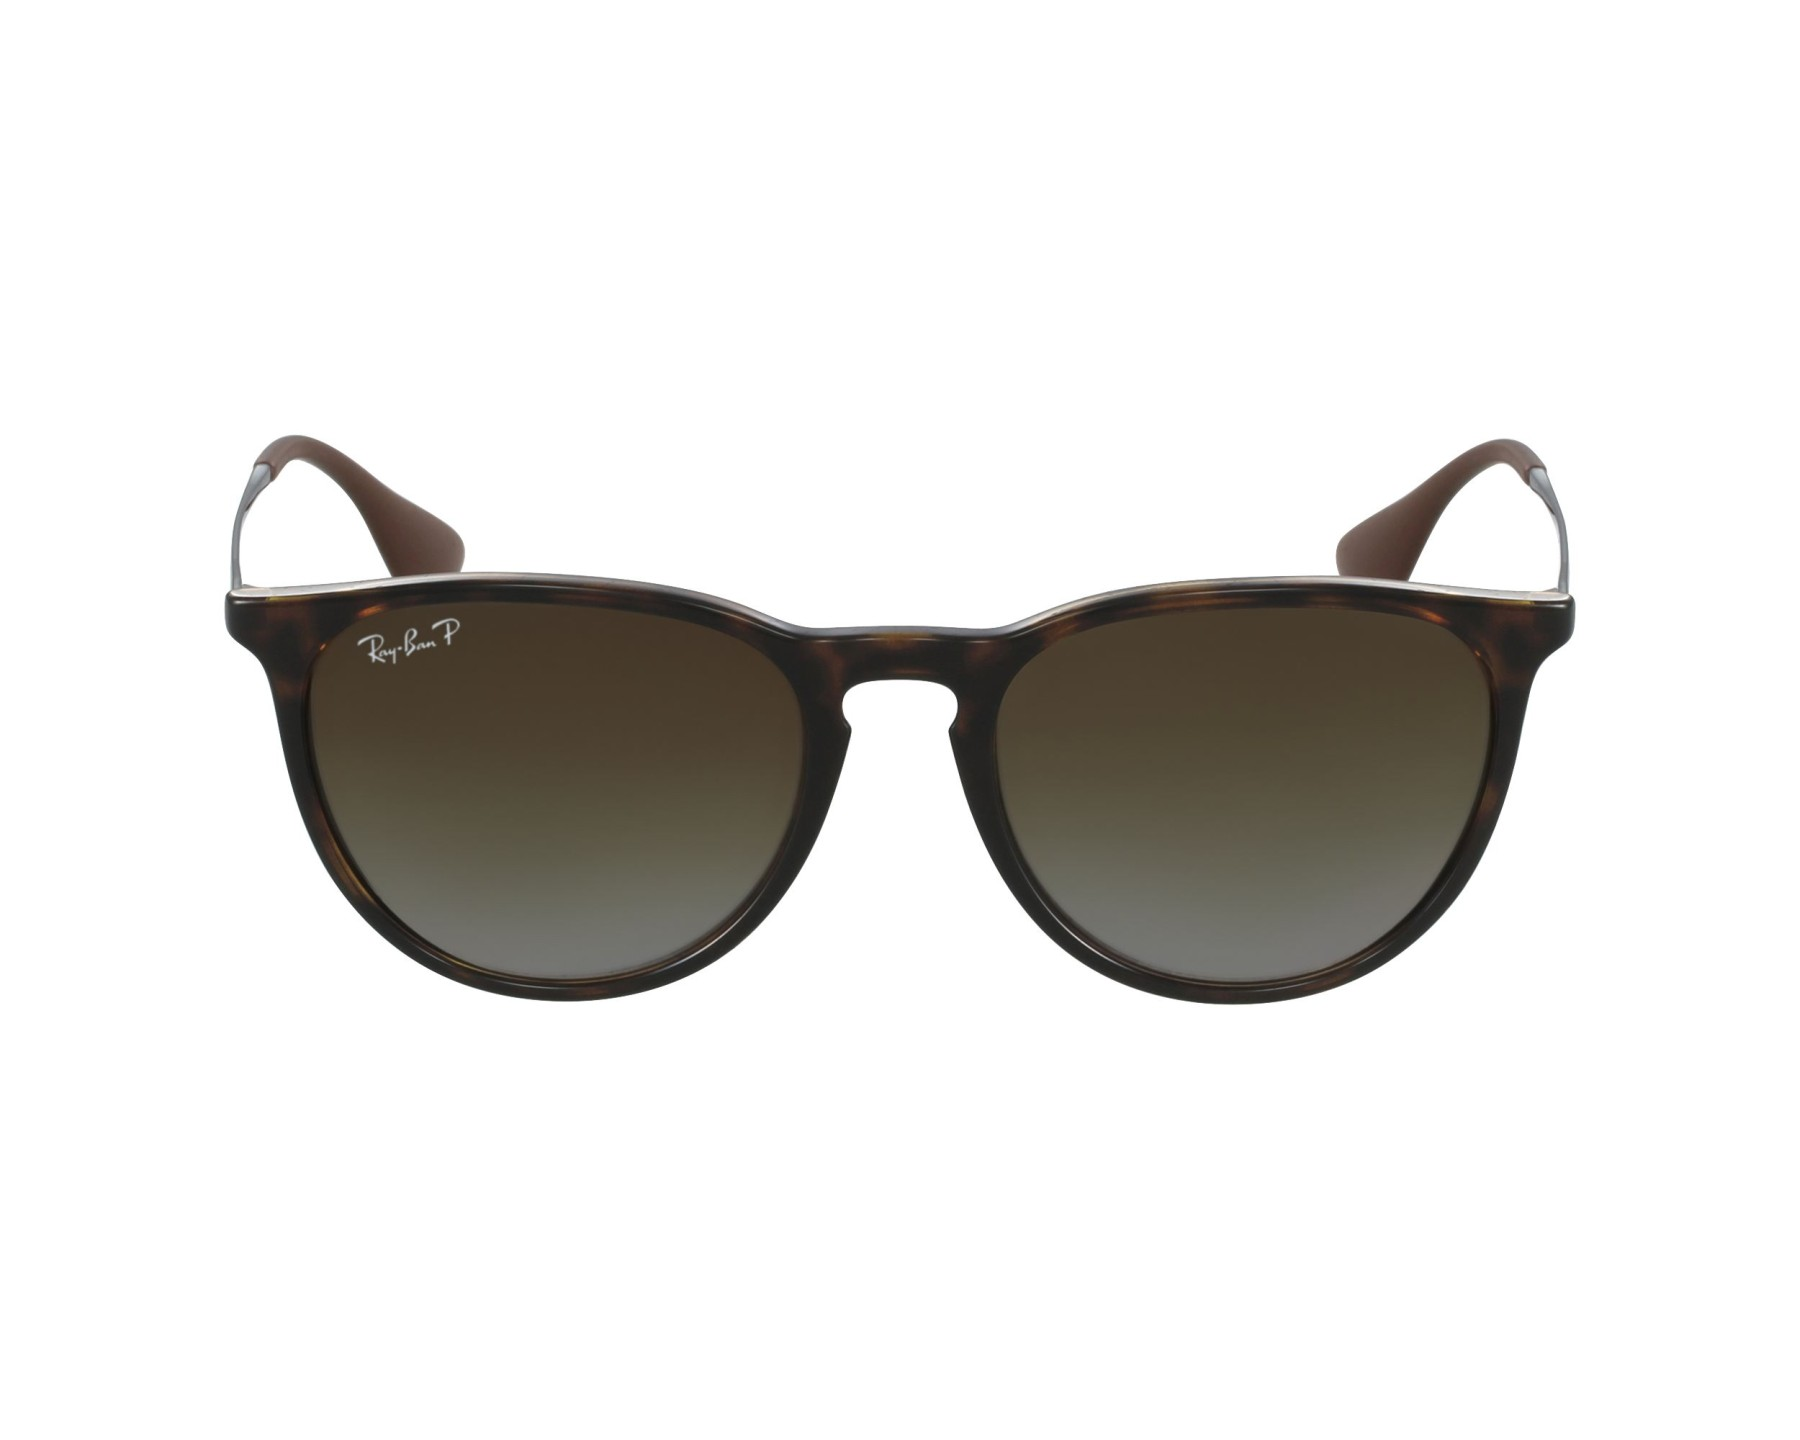 ray ban sunglasses rb 4171 710 t5 havana with brown. Black Bedroom Furniture Sets. Home Design Ideas